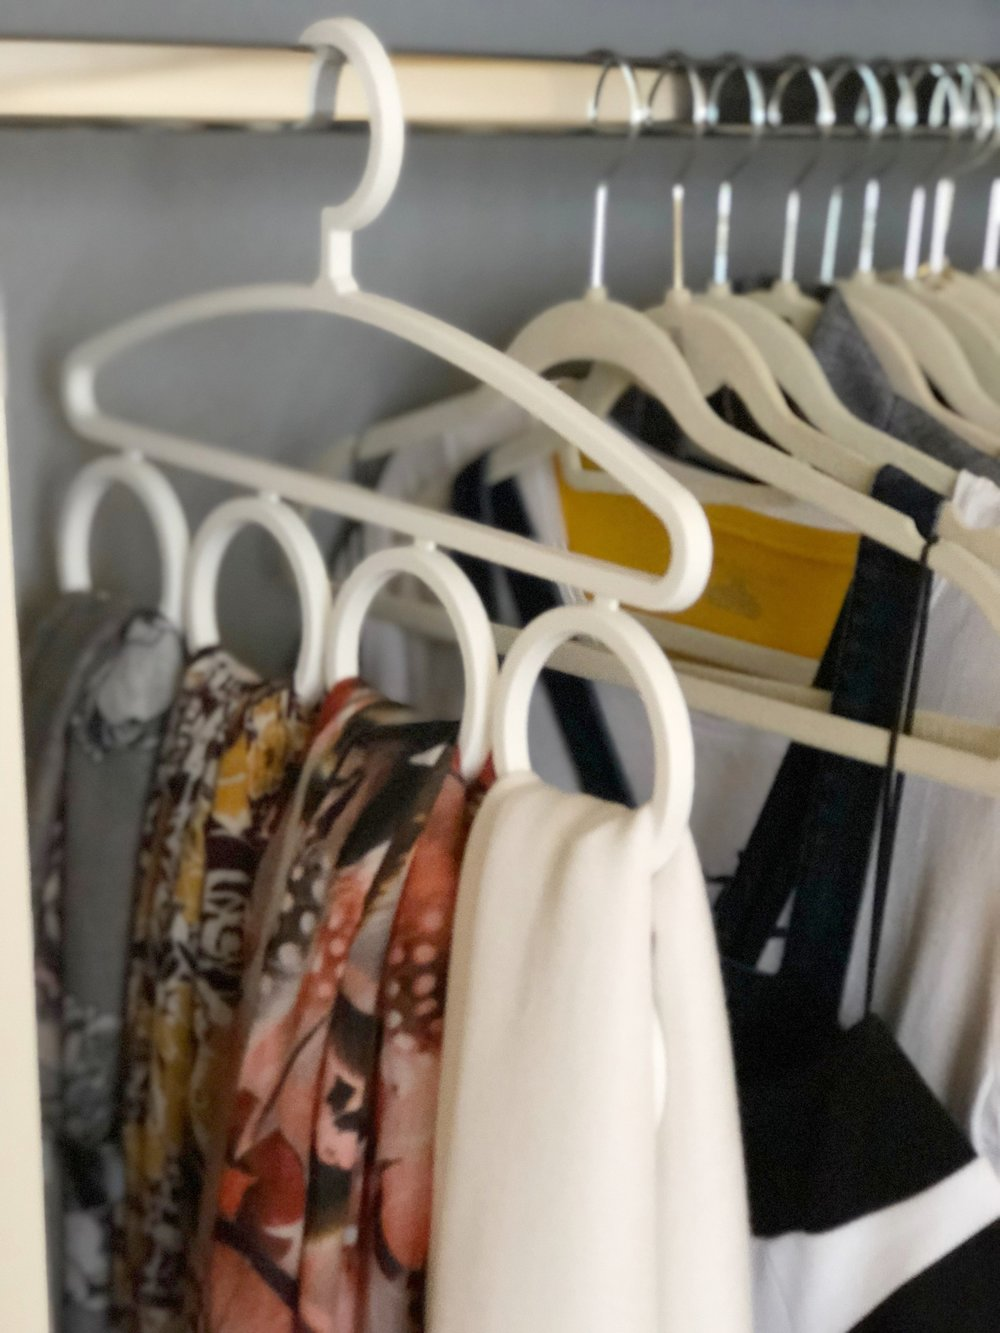 Scarf Organizer - The Style Shop by Sandi Mele - How to Organize Your Closet Accessories